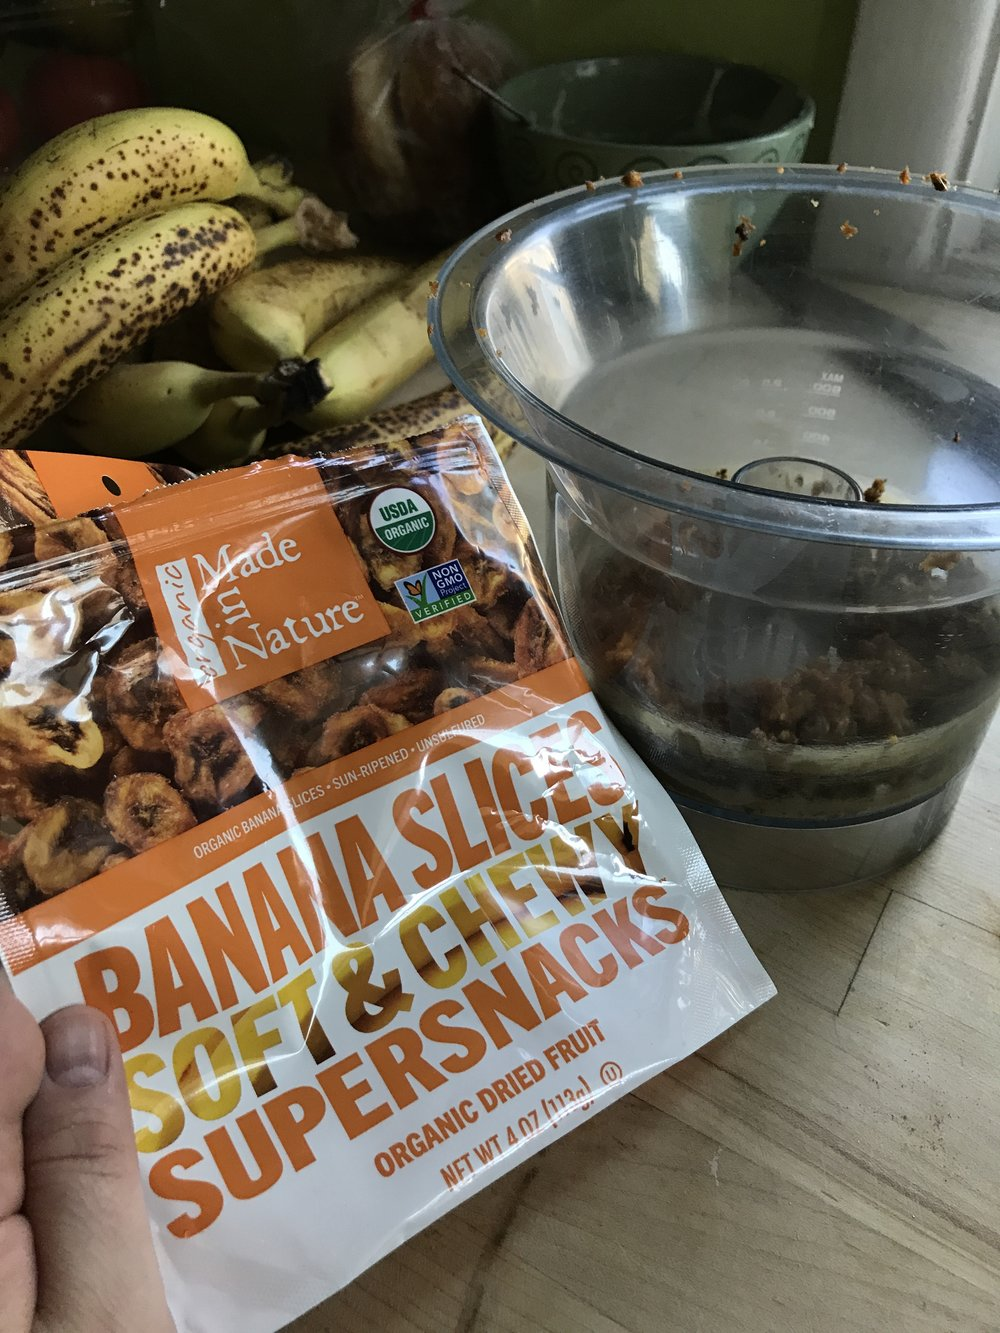 If you can't find soft and chewy dried bananas, I think the crunchy banana pieces will work well too...briefly rehydrated in a couple tablespoons of hot water.